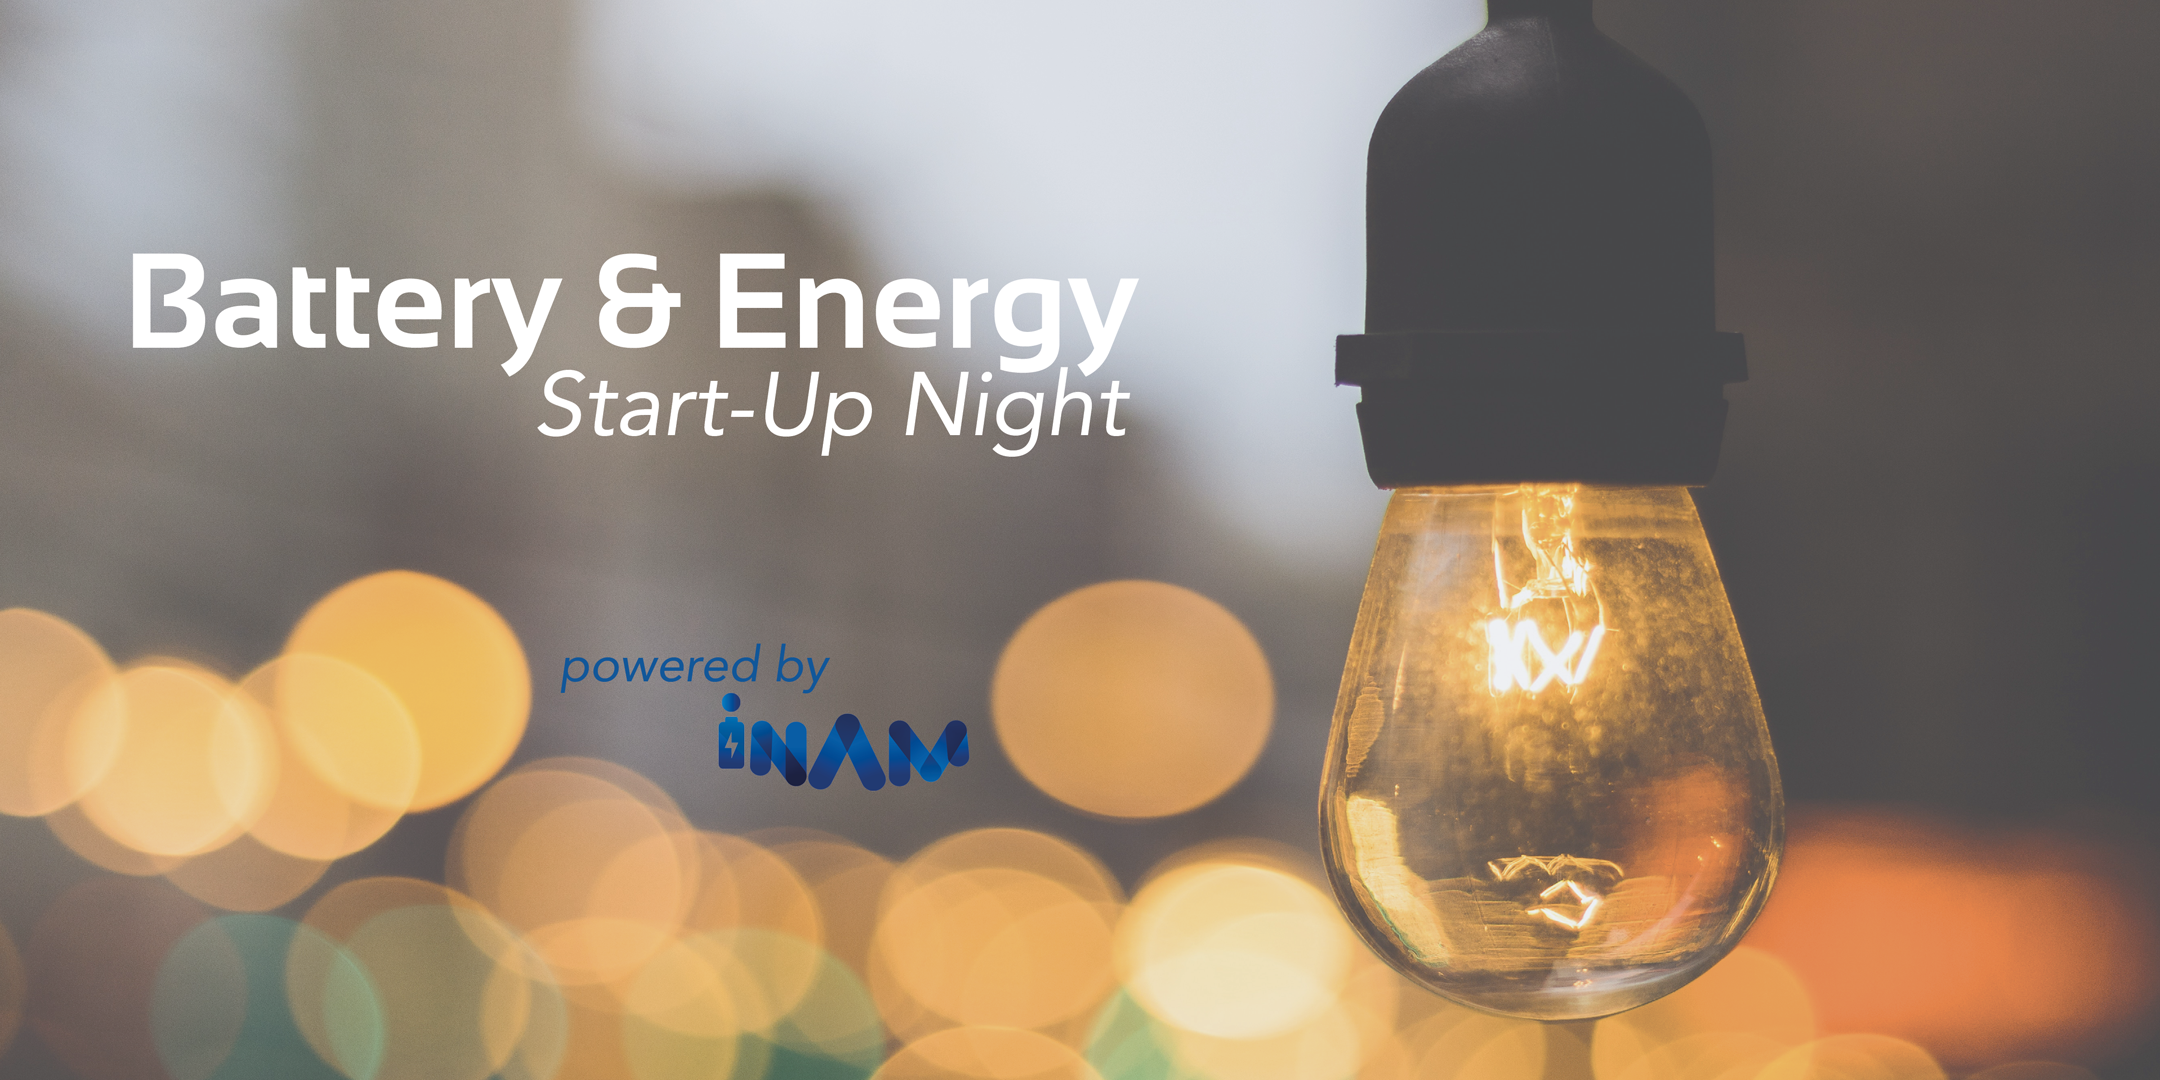 BAttery & Energy Pitch Event - Wednesday June 20, 201817:00 21:00@ FvF Friends Space, Berlin, Germany